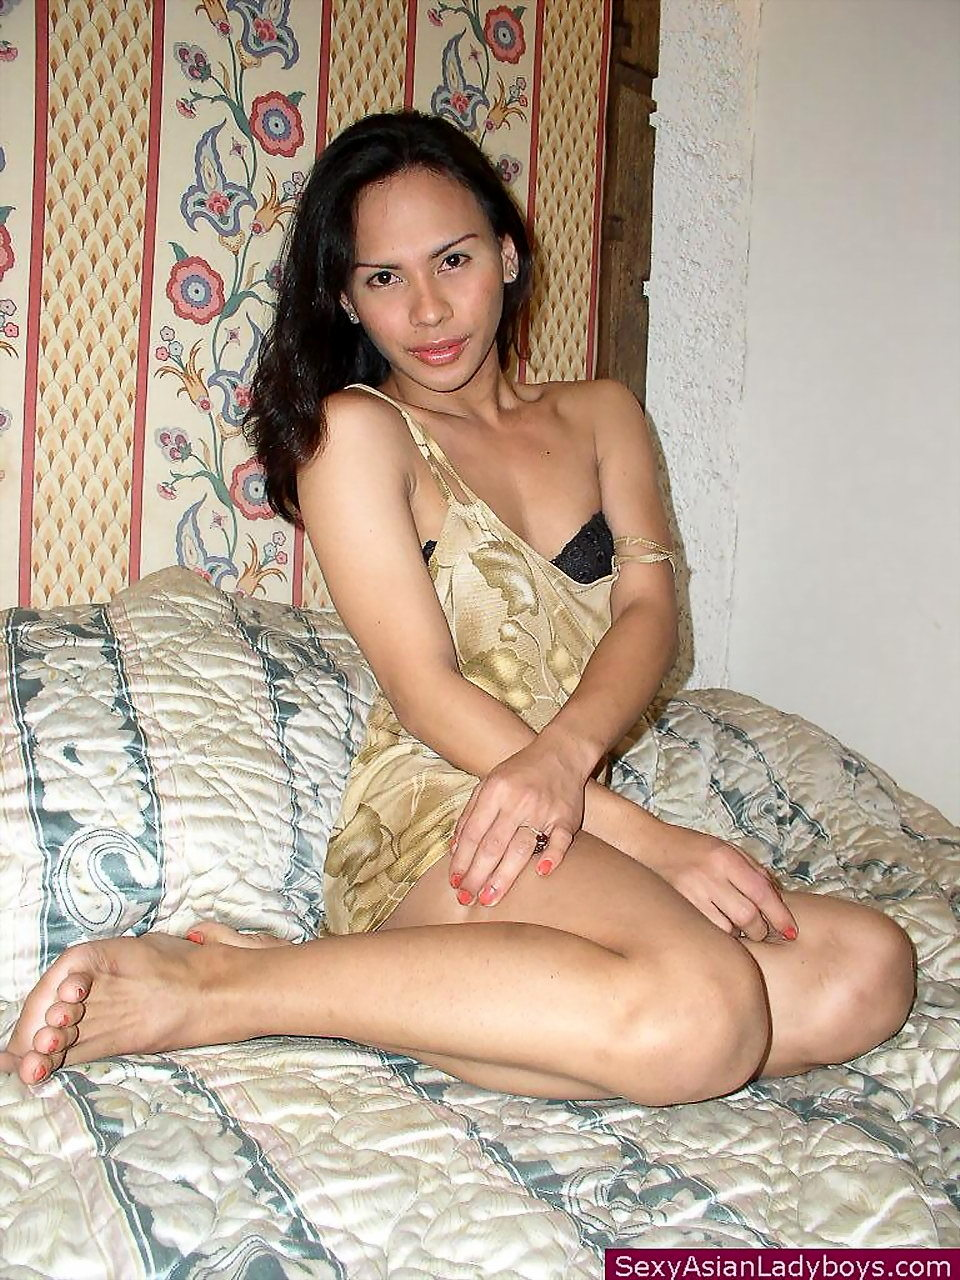 Beautiful Thai Trannie Showing Her Neat Mouth Watering Package